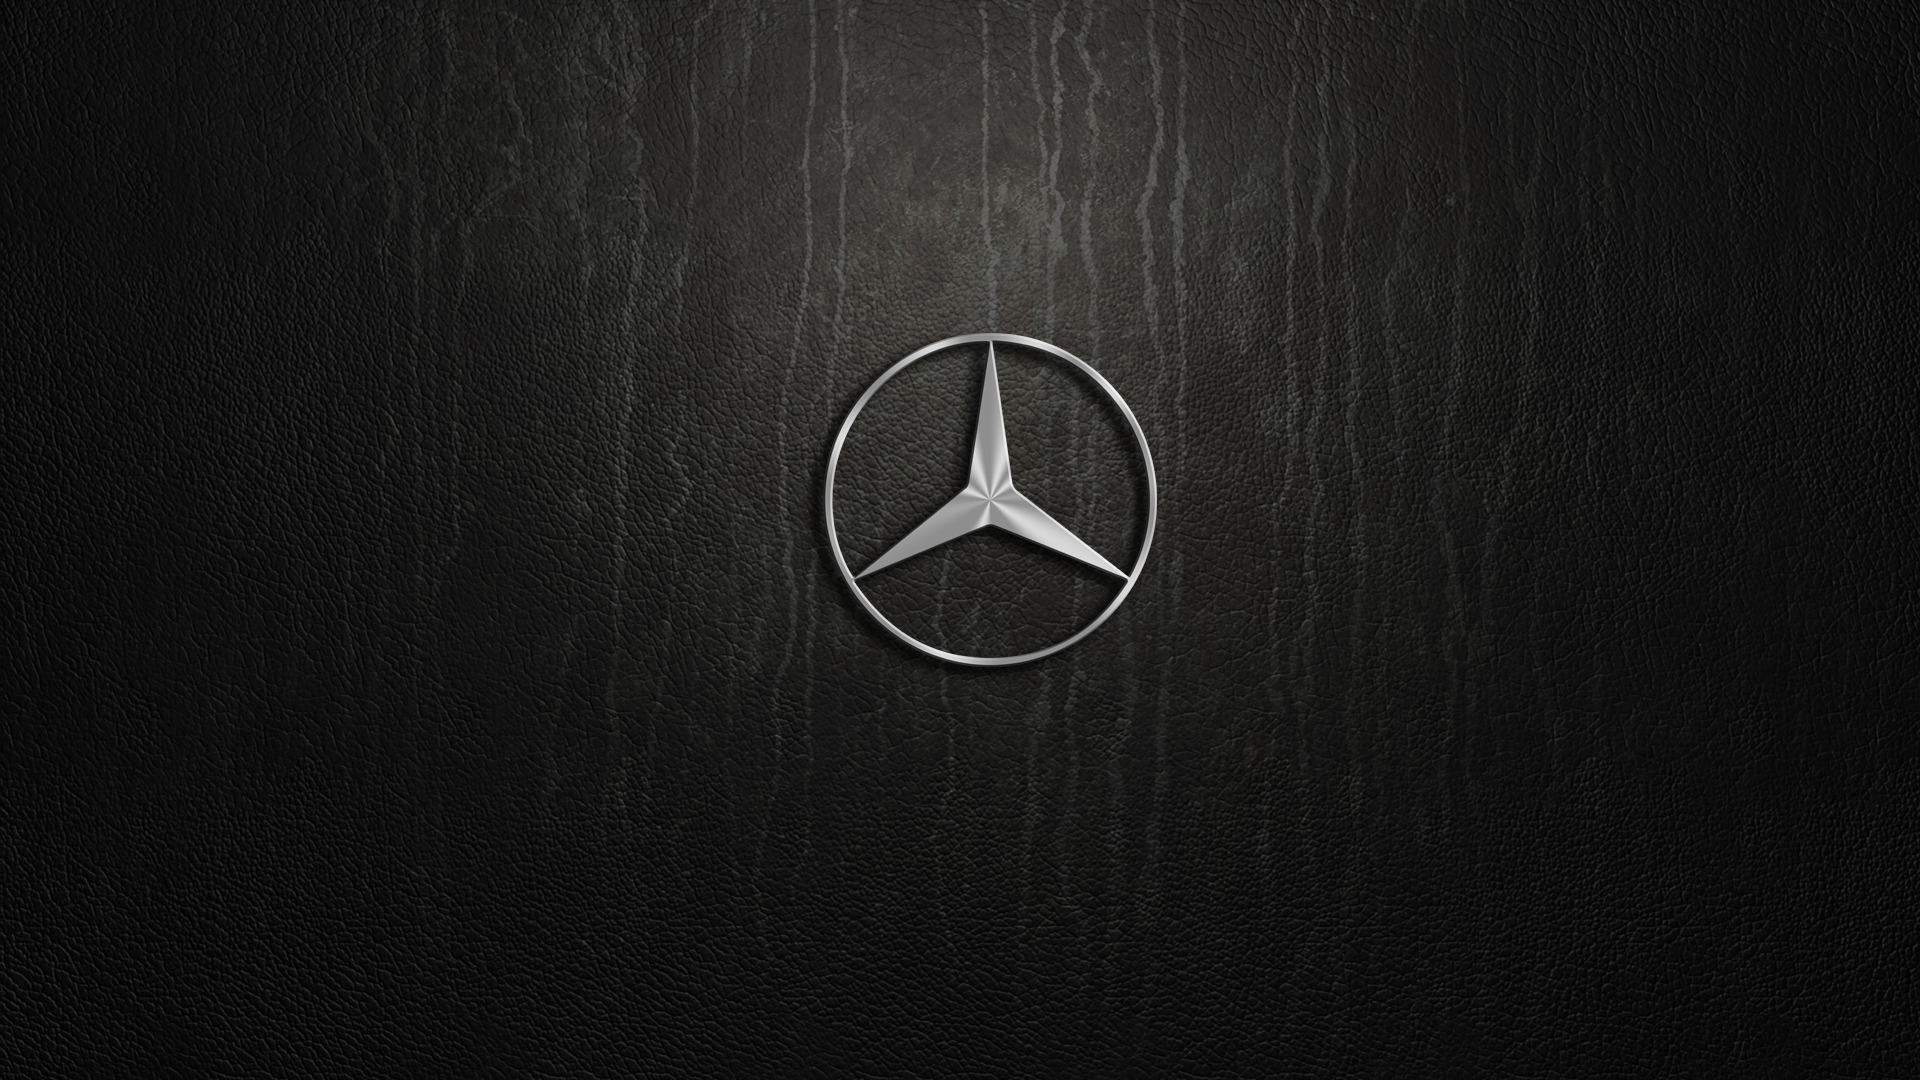 Mercedes Benz Hd Wallpaper Background Image 1920x1080 Id